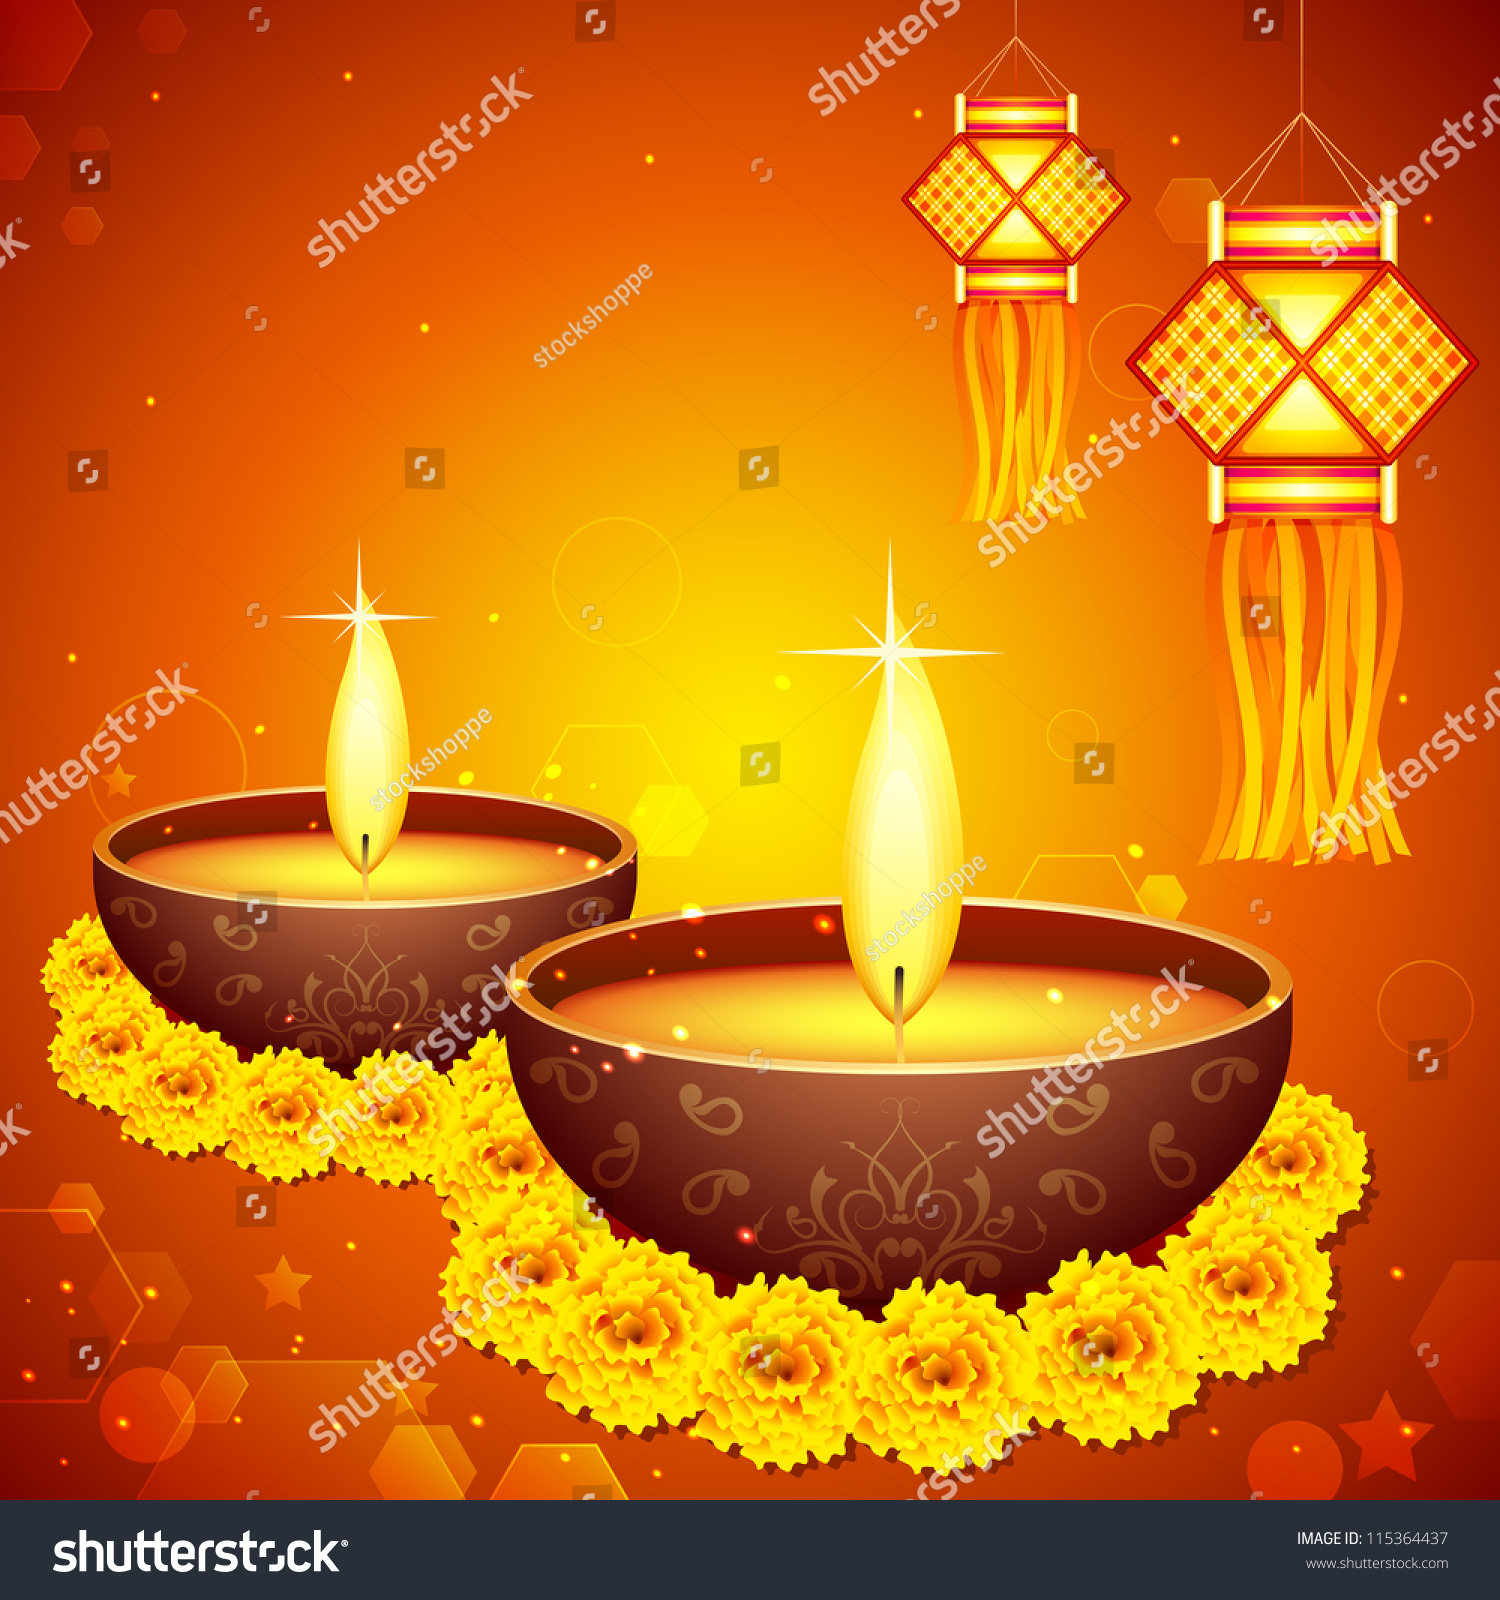 Vector Illustration Colorful Diwali Hanging Lantern Stock Vector ... for Diwali Hanging Diya  155fiz